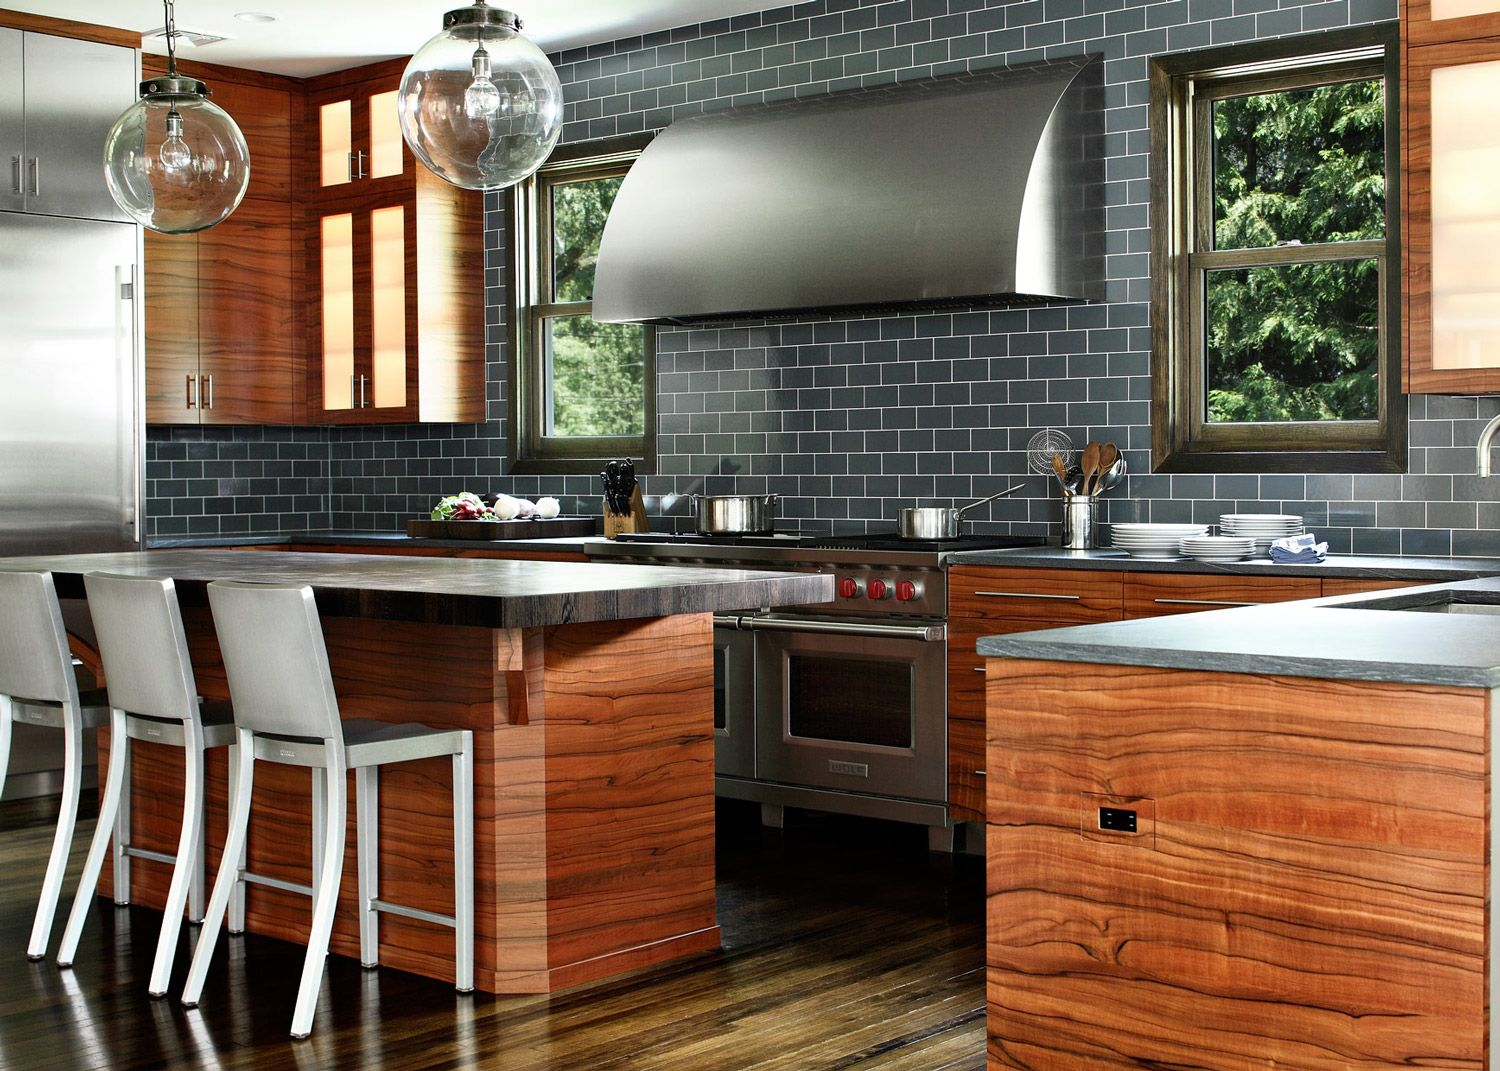 A y mix if charcoal, stainless and exotic veneer. | MB Designs ... Contemporary Kitchen Remodeling Ideas Wolf on contemporary kitchen trends, contemporary kitchen diy, contemporary kitchen decorating ideas, bedroom remodeling ideas, contemporary countertops ideas, contemporary country kitchens, contemporary siding ideas, contemporary kitchen appliances, contemporary outdoor kitchen ideas, contemporary kitchen cabinetry, contemporary kitchen colors ideas, contemporary kitchen doors, contemporary kitchen cabinet ideas, contemporary tile ideas, contemporary rustic kitchen, contemporary kitchen furniture, contemporary kitchen islands, contemporary kitchen storage, contemporary kitchen countertops, contemporary kitchen design,